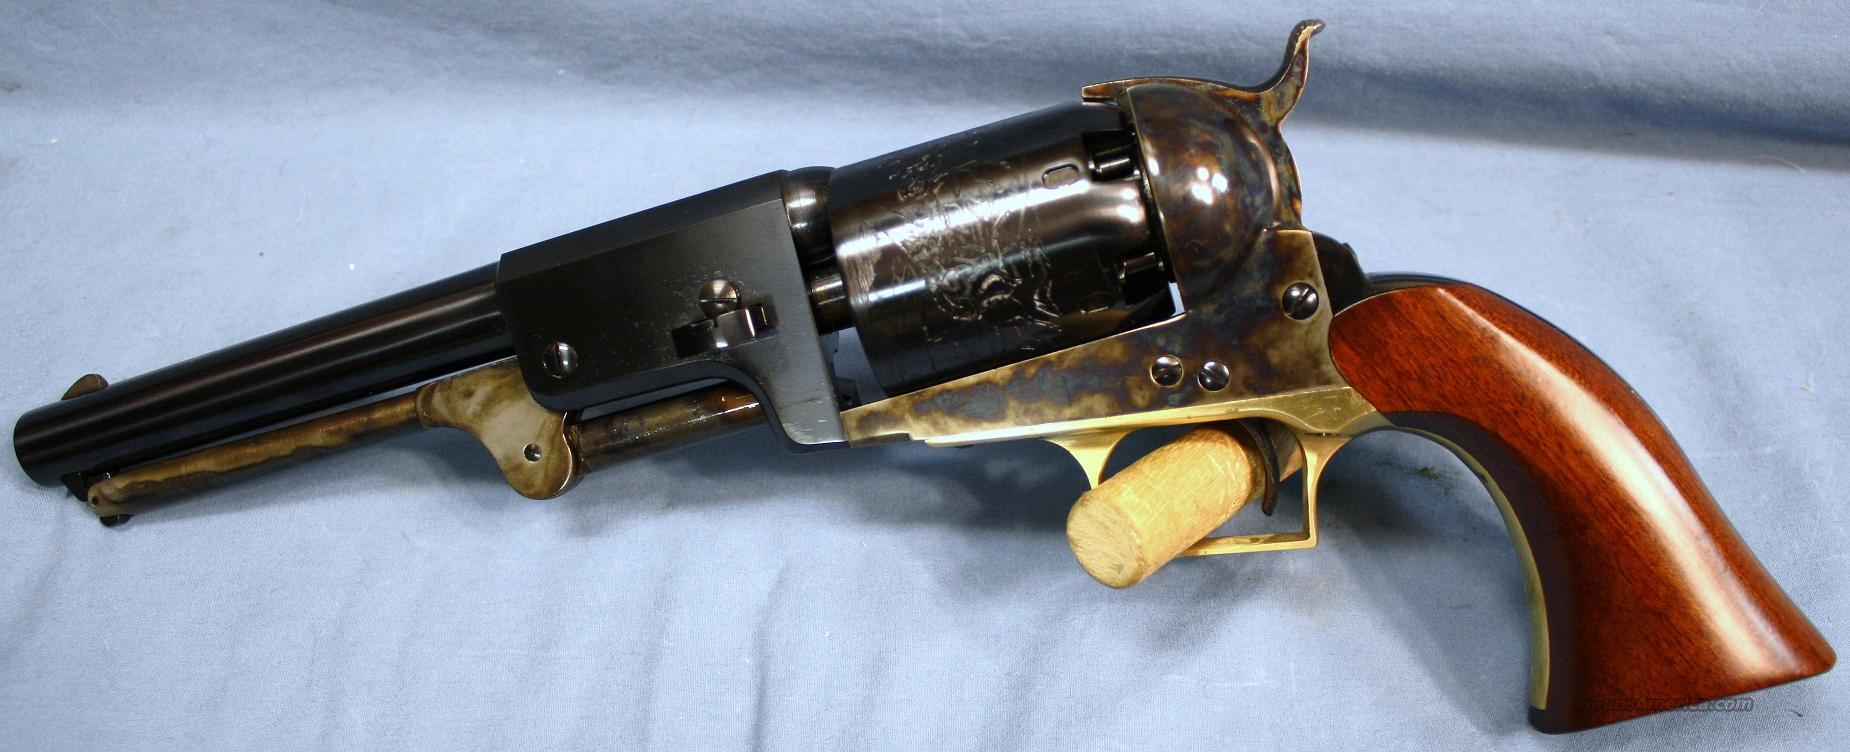 Cimarron 1848 Whitneyville Dragoon Single Action Blackpowder Percussion Revolver .44 Caliber Free Shipping and No Credit Card Fees!  Guns > Pistols > Cimmaron Pistols